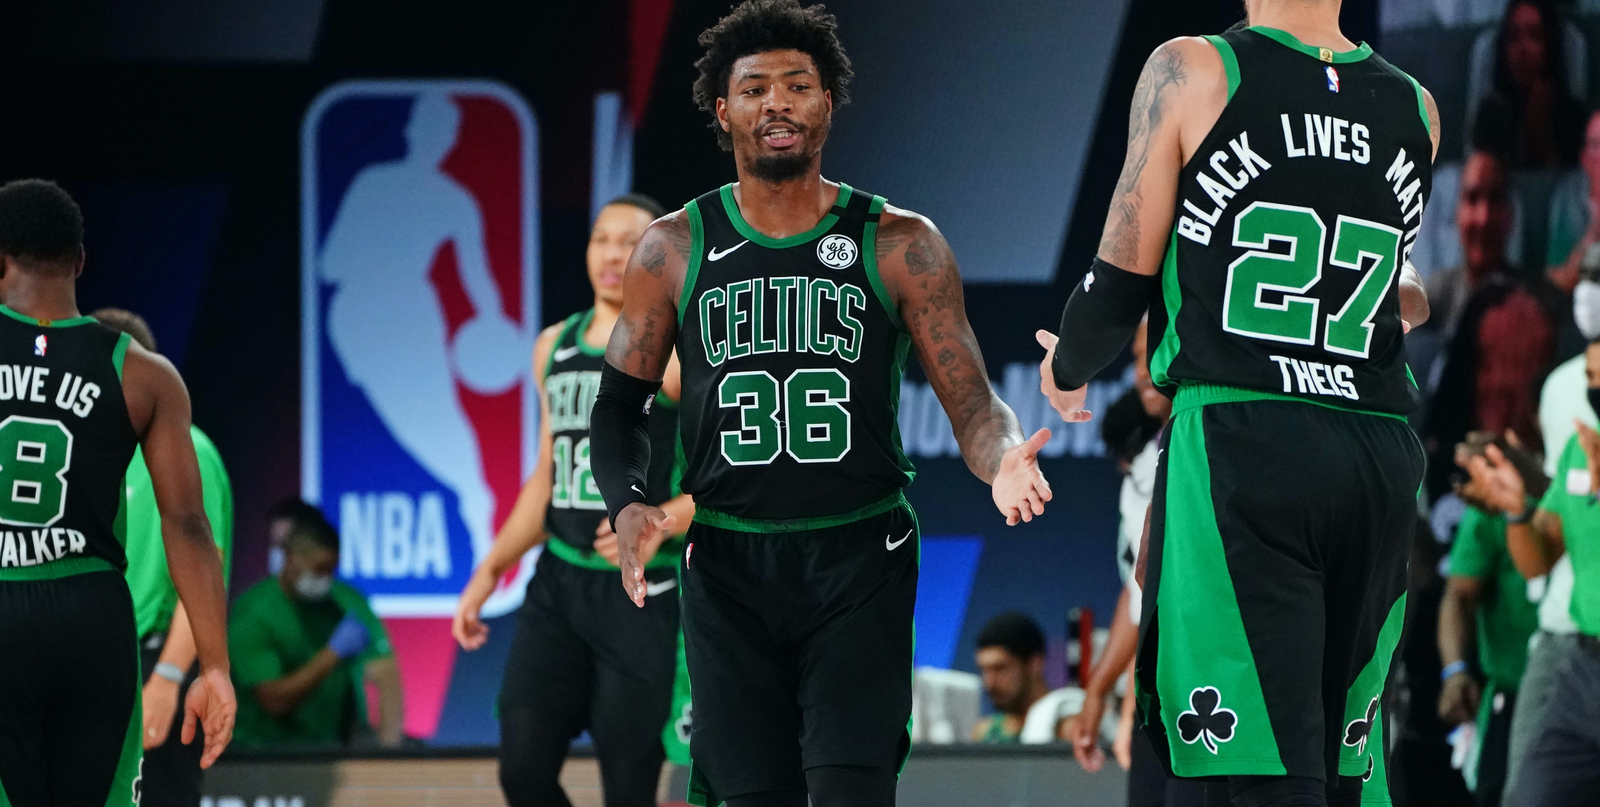 Celtics Heat Agree A 2 0 Lead In East Finals Means